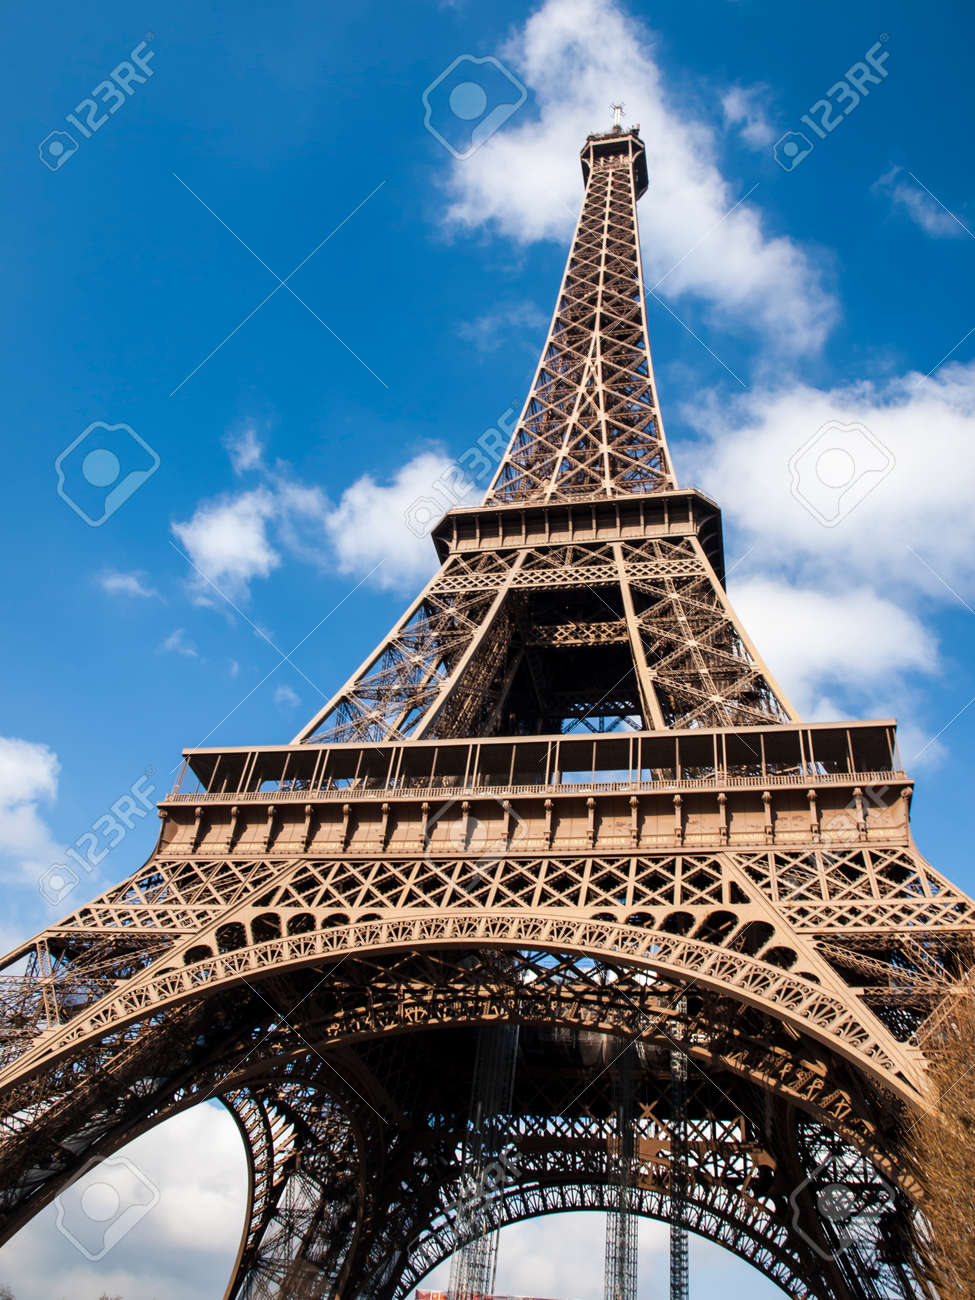 Eiffel Tower in the French capital of Paris - 125163346